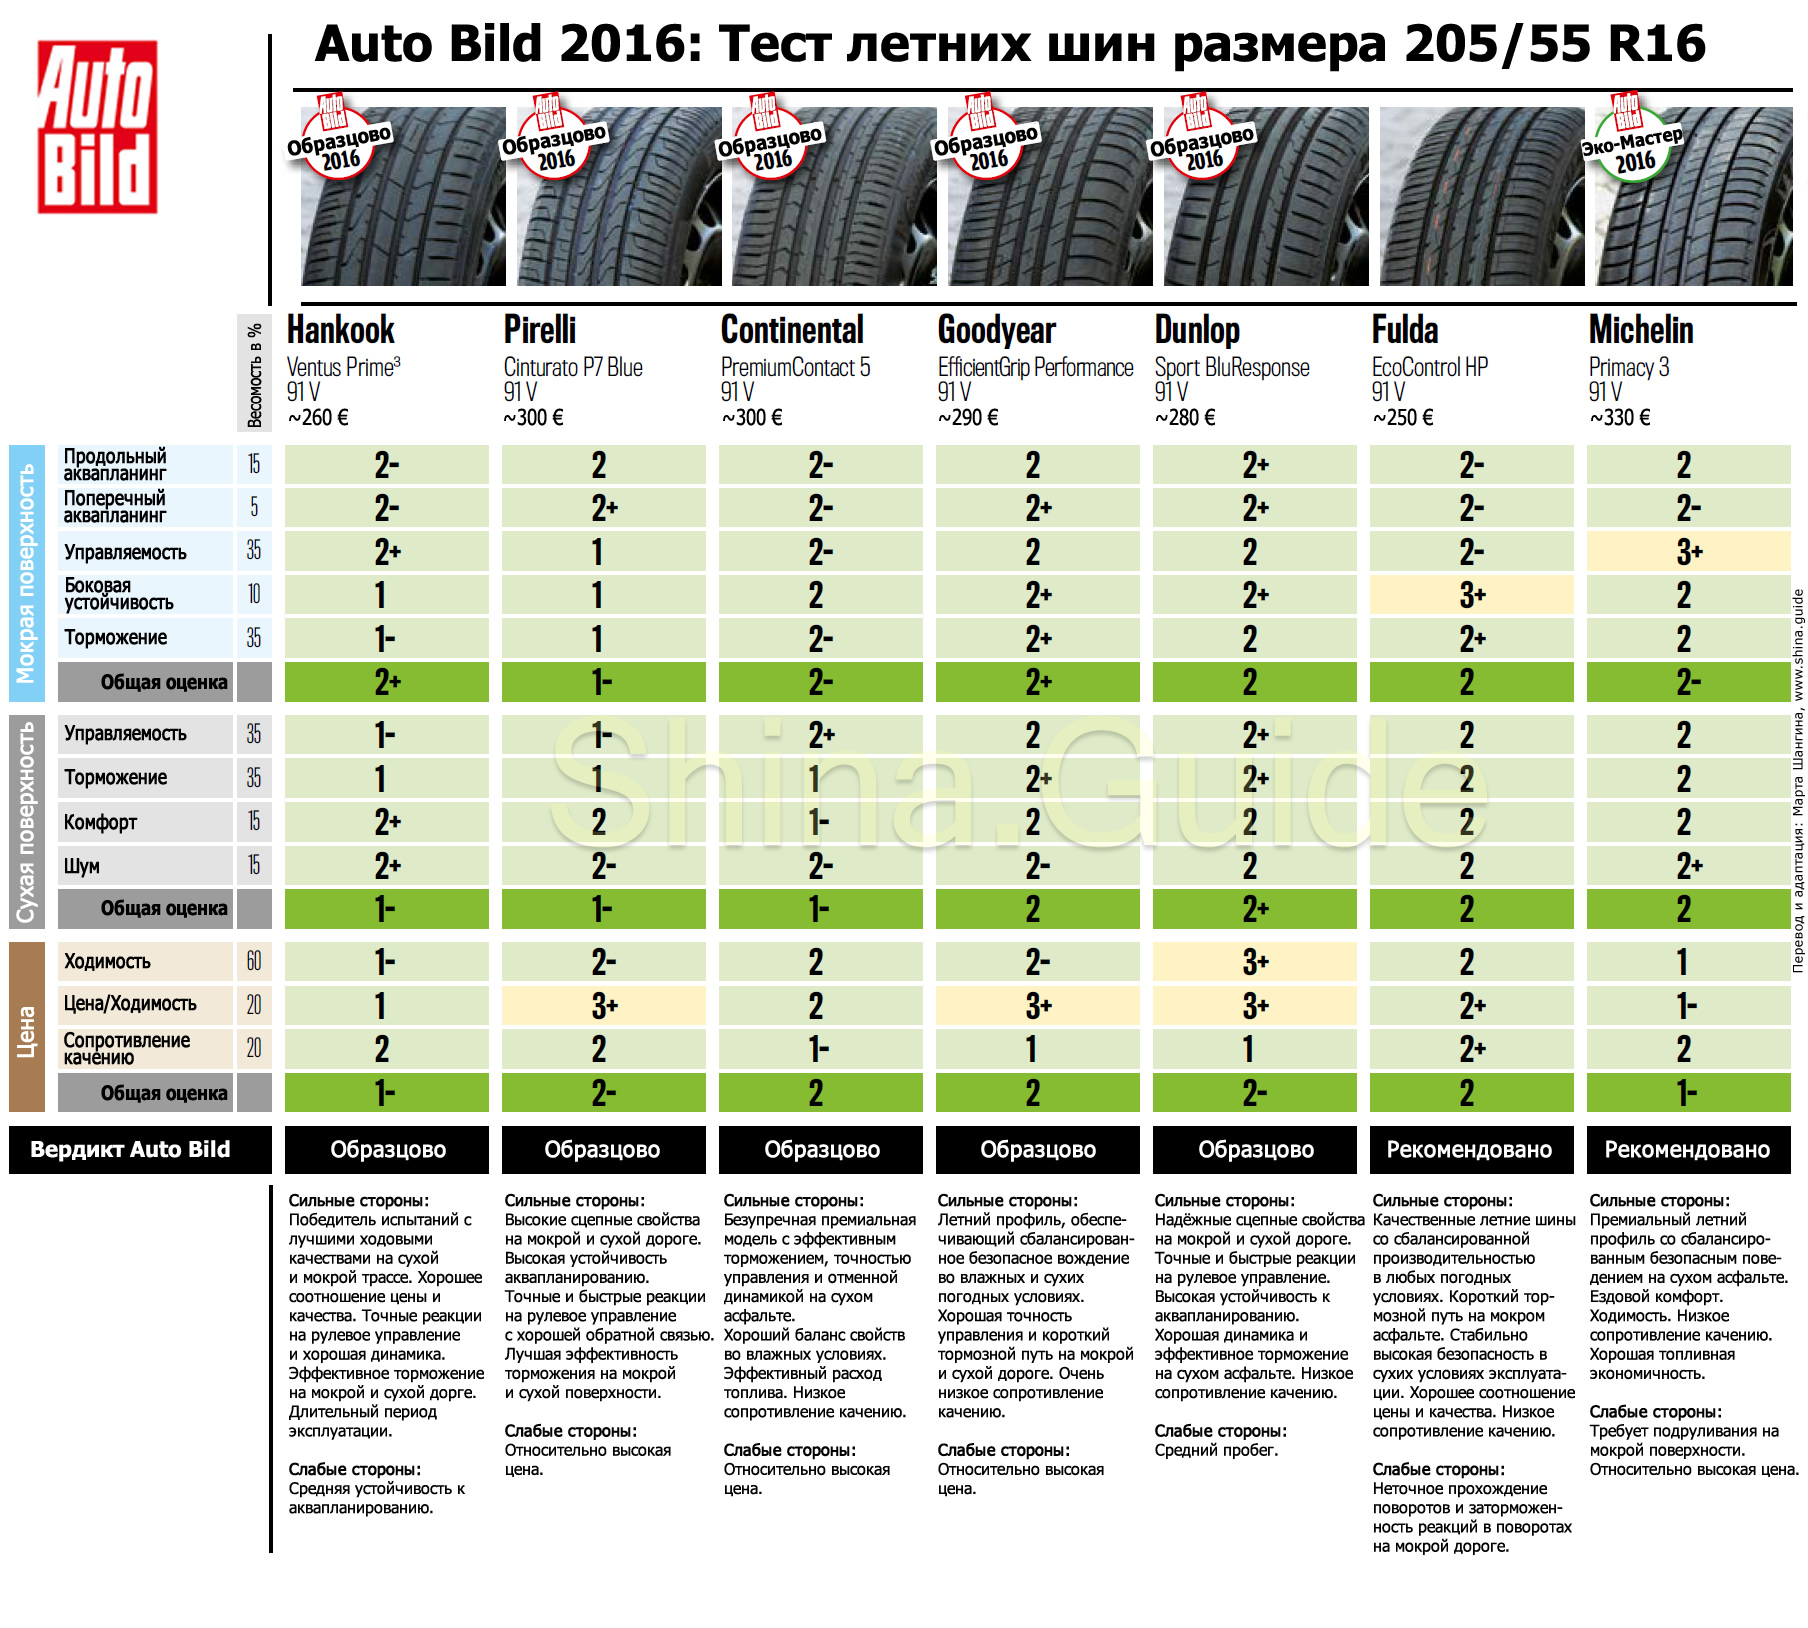 Auto-Bild-2016-summer-tire-205-55-R16-test-results-part-1